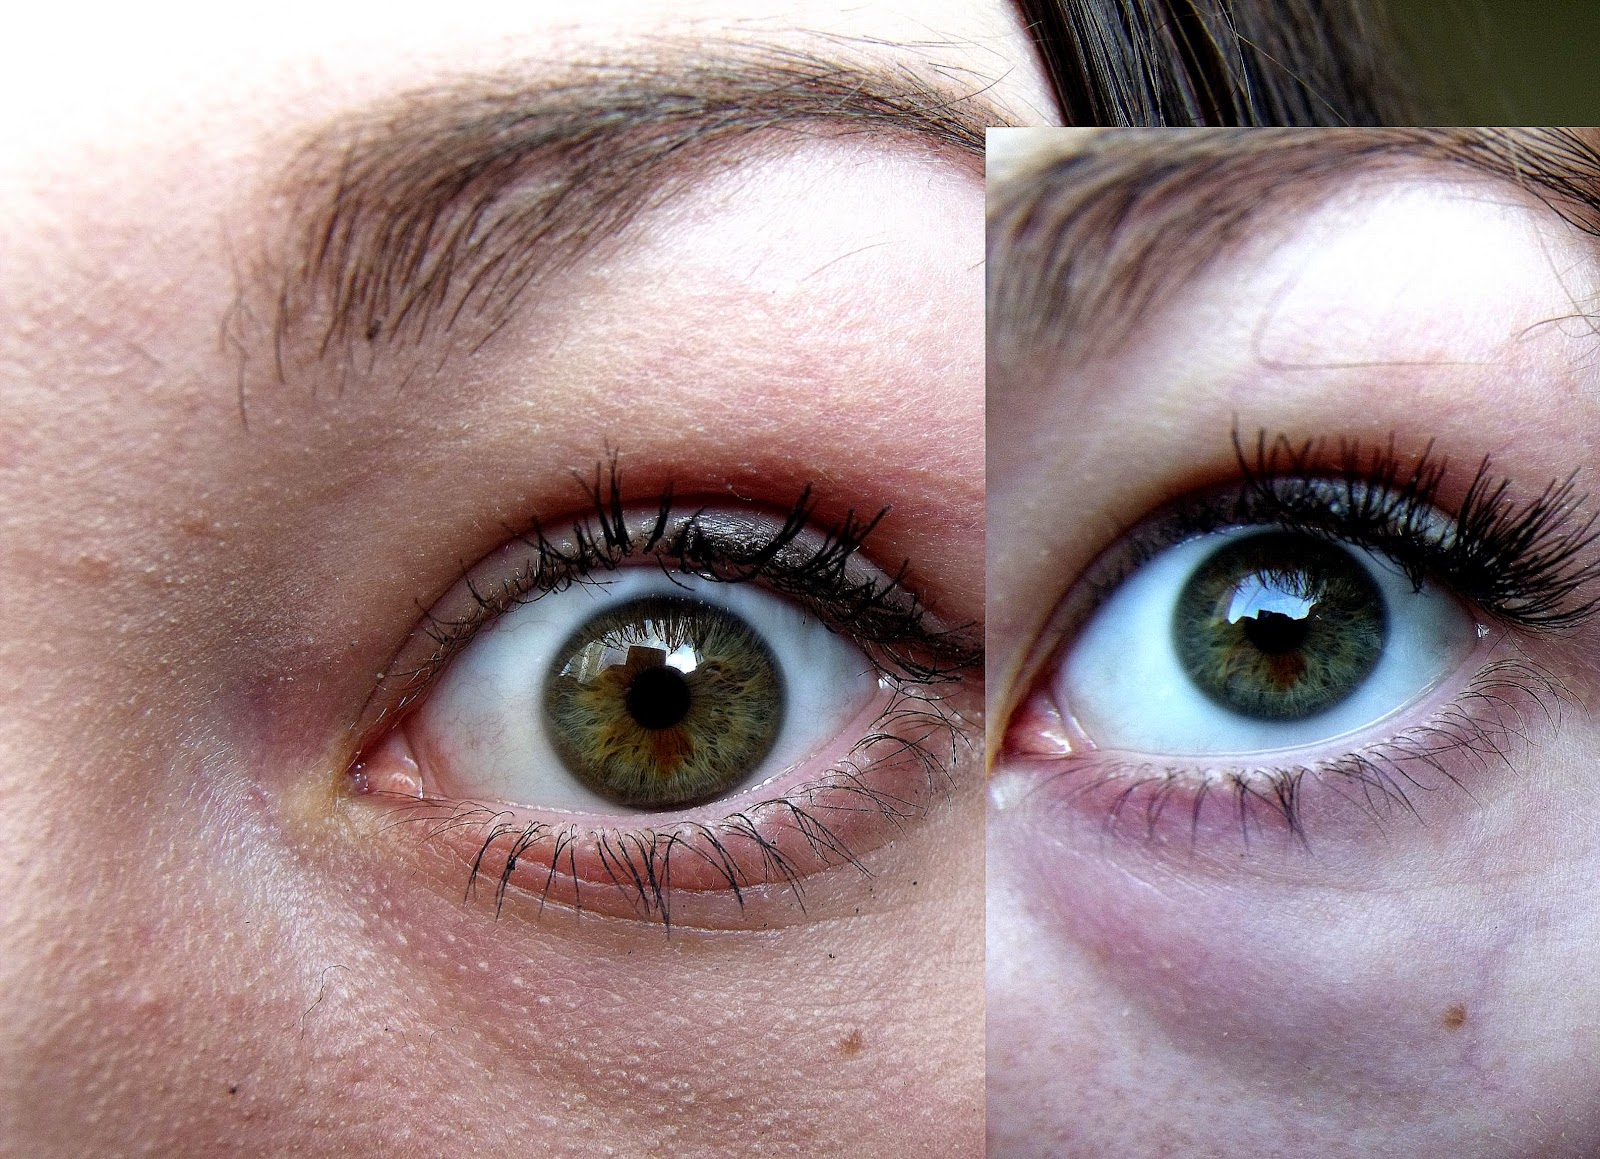 Possible For Eyes To Change